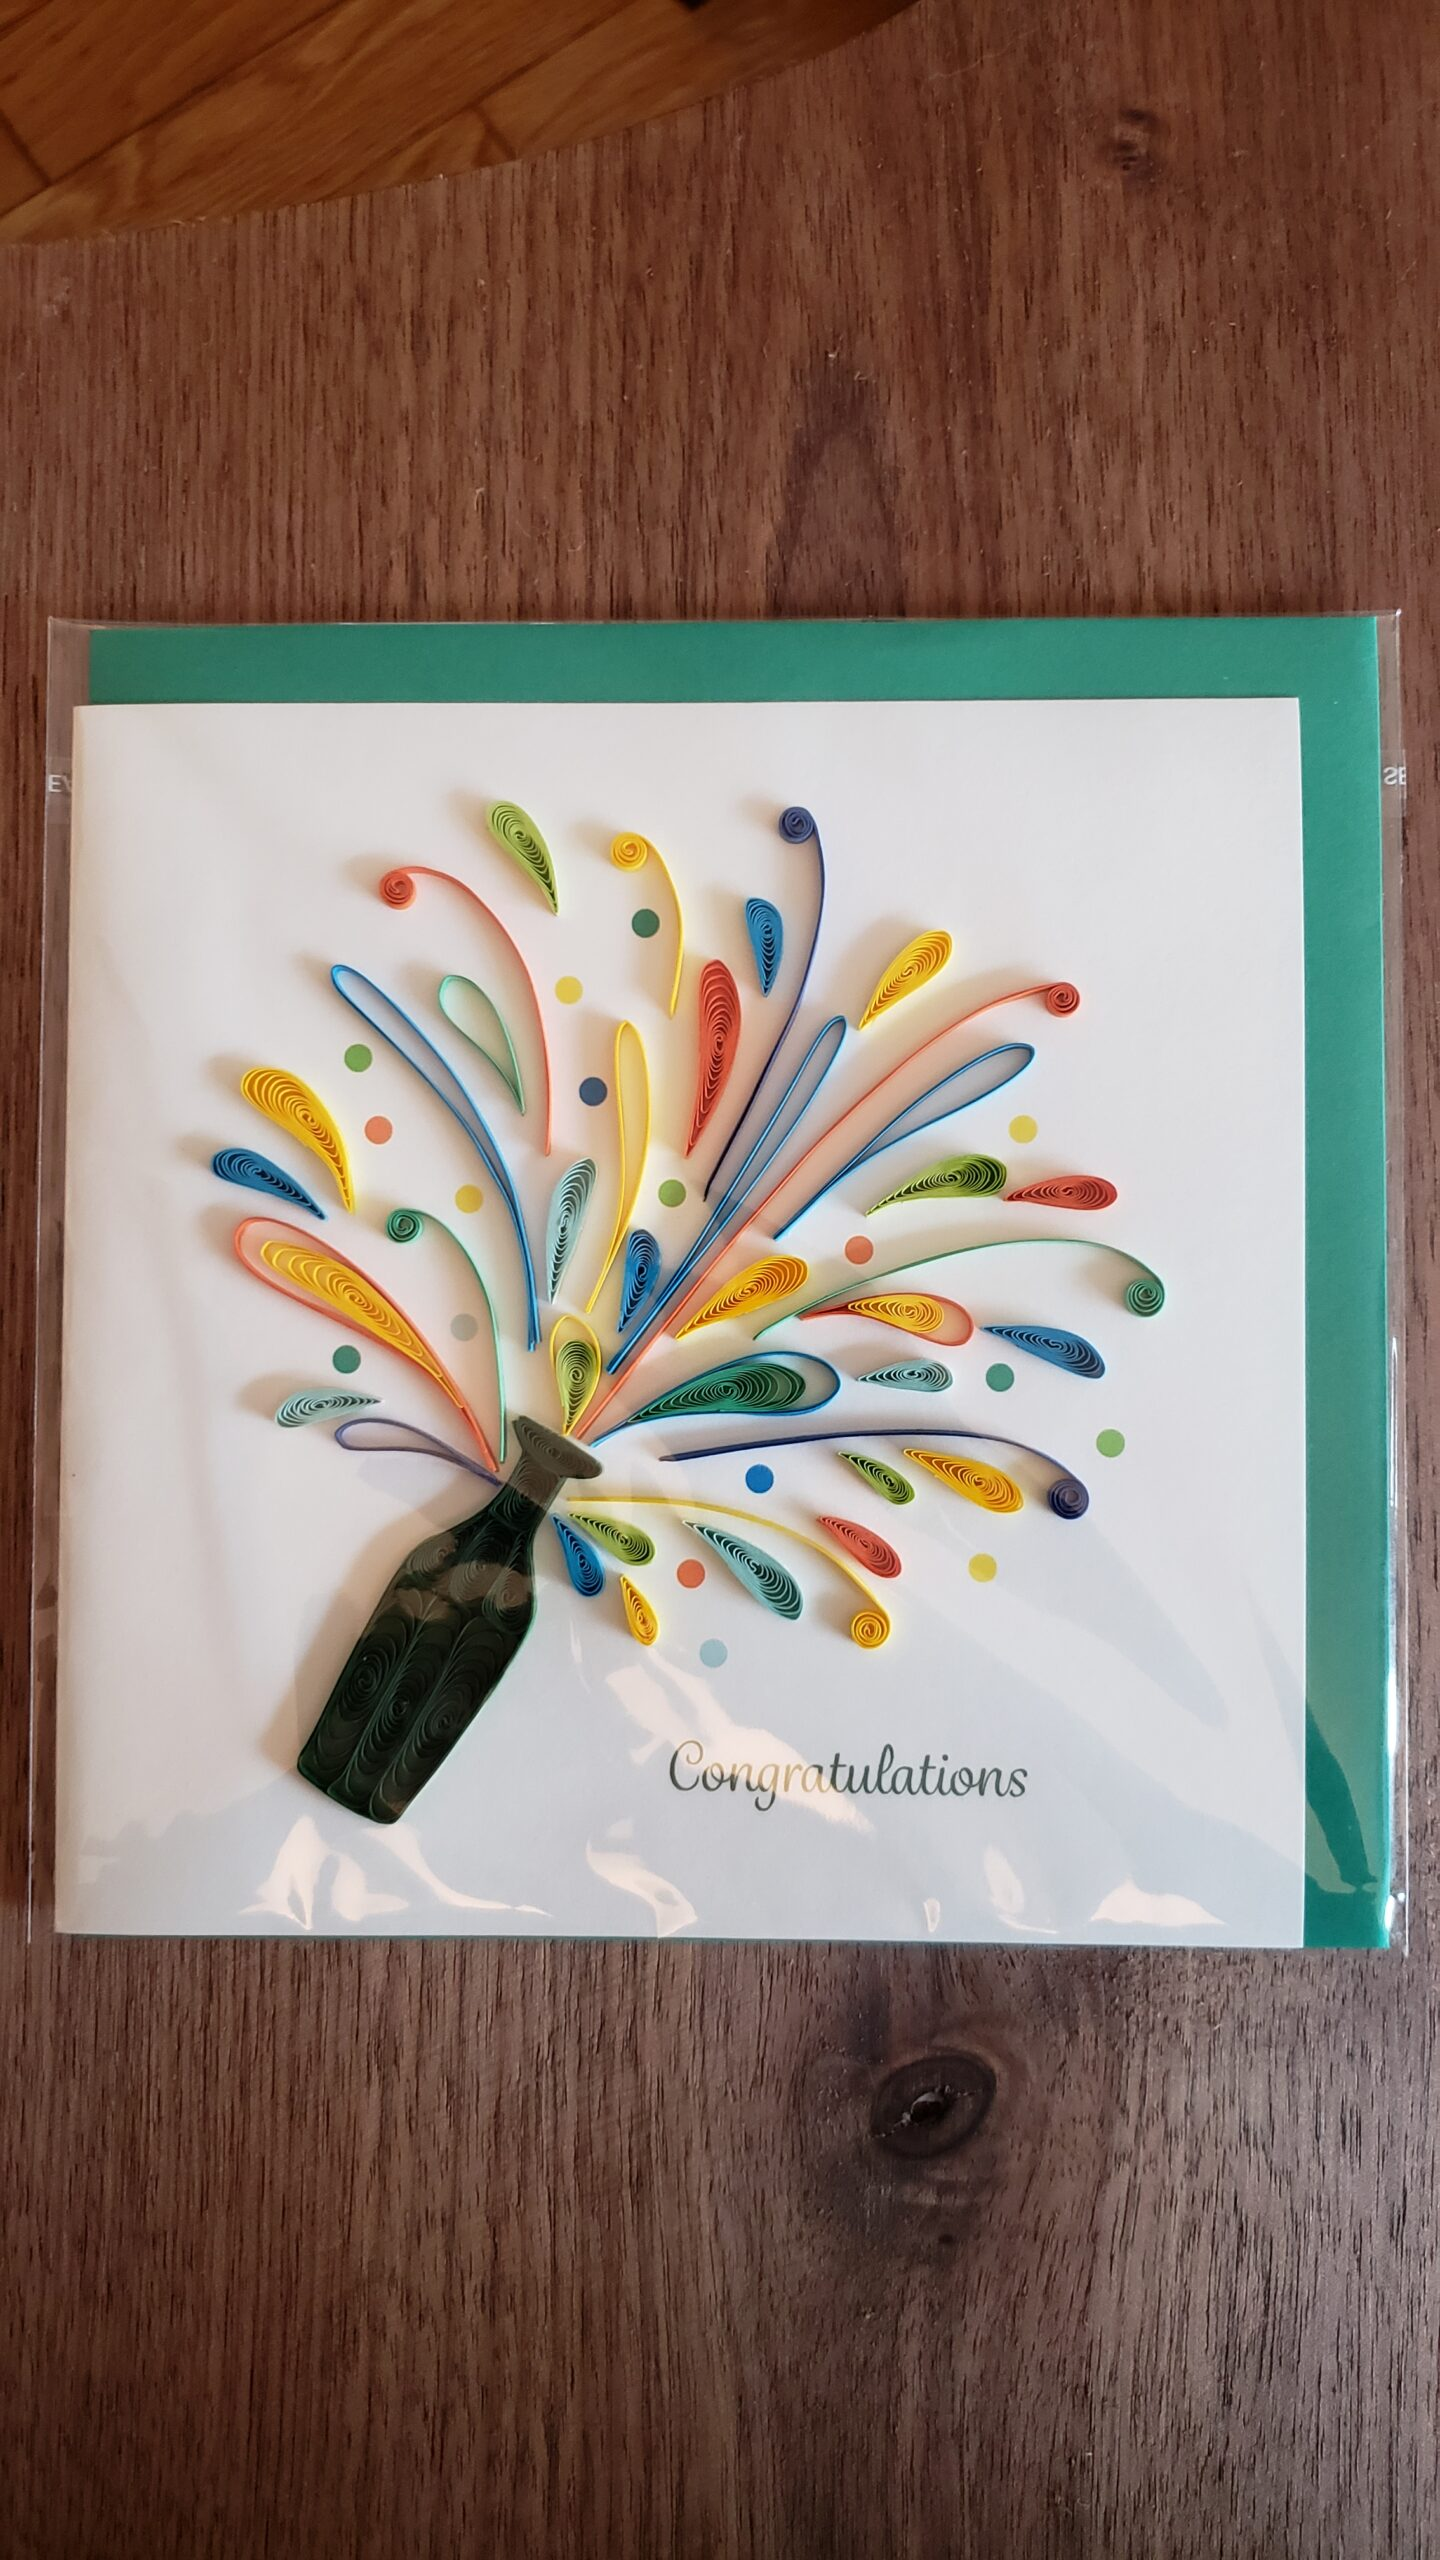 Celebration Congrats Card 6 in. x 6 in.